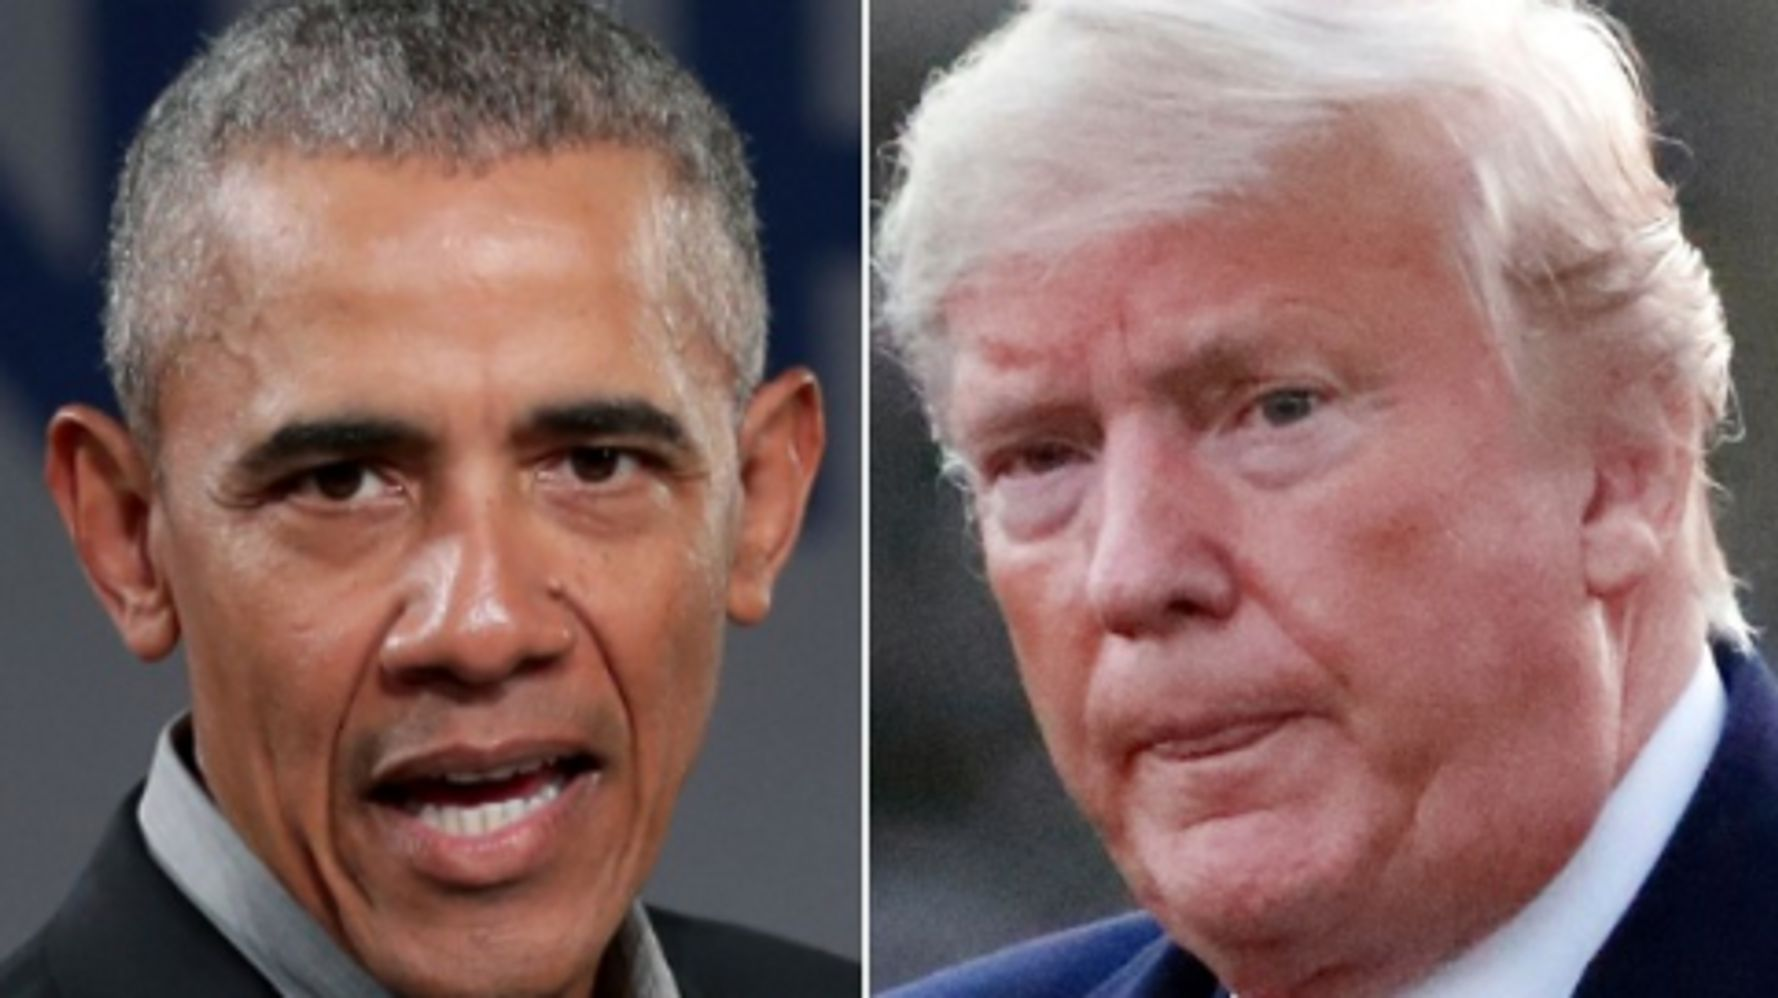 Obama Photographer Taunts Trump With Throwback Handwritten Notes Snap